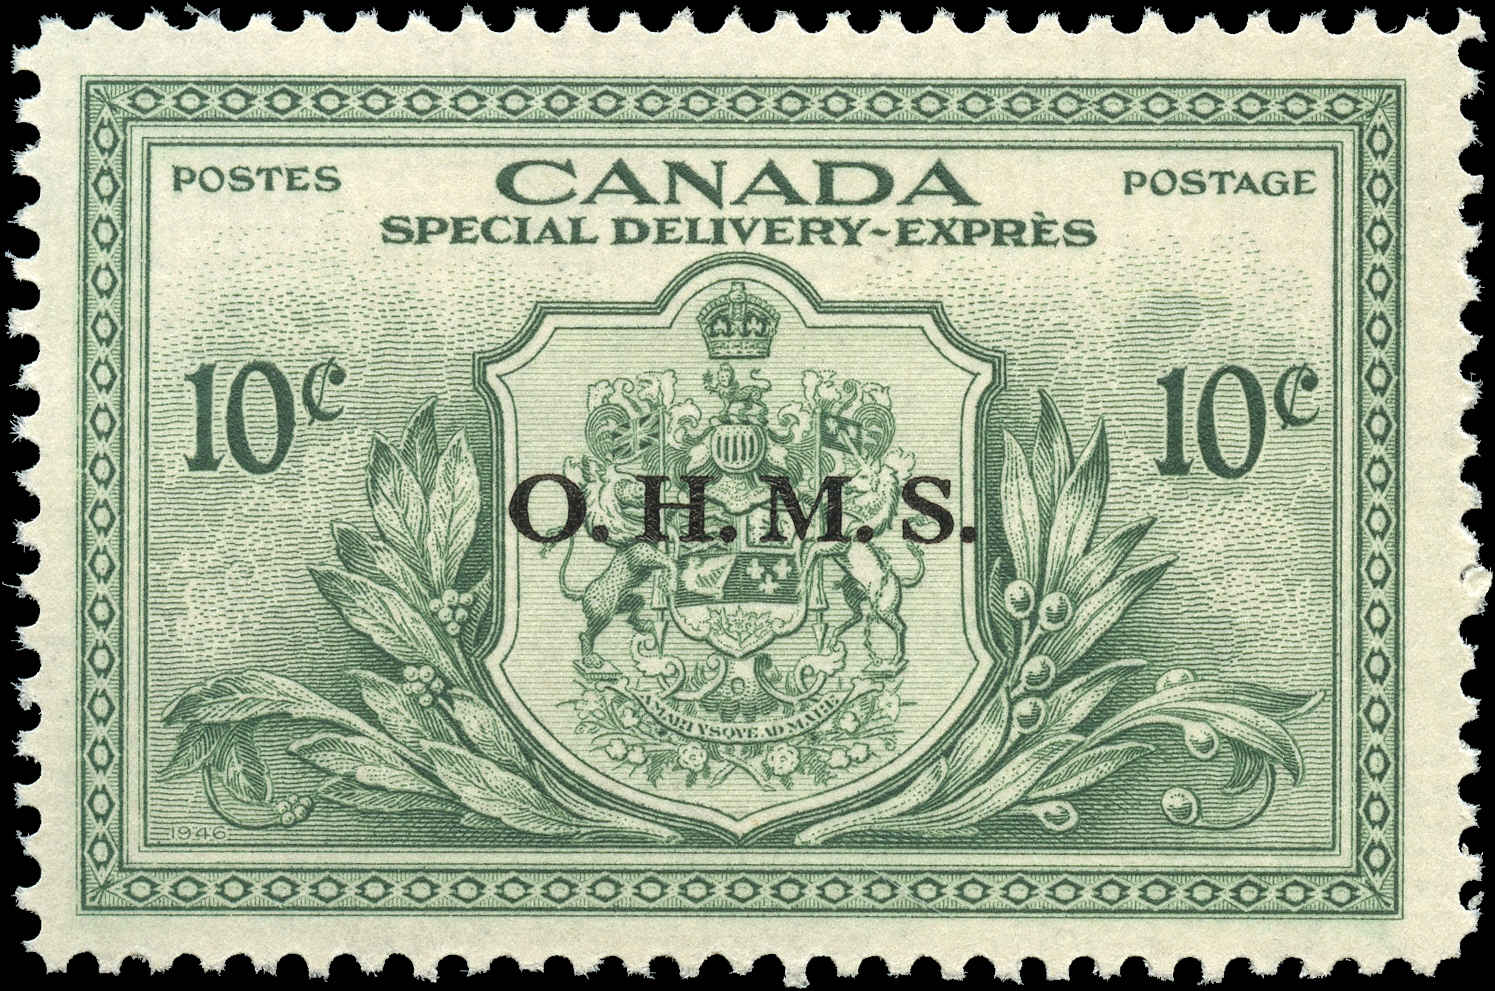 Canada #EO1, Overprint Stamp, F-VF, MH